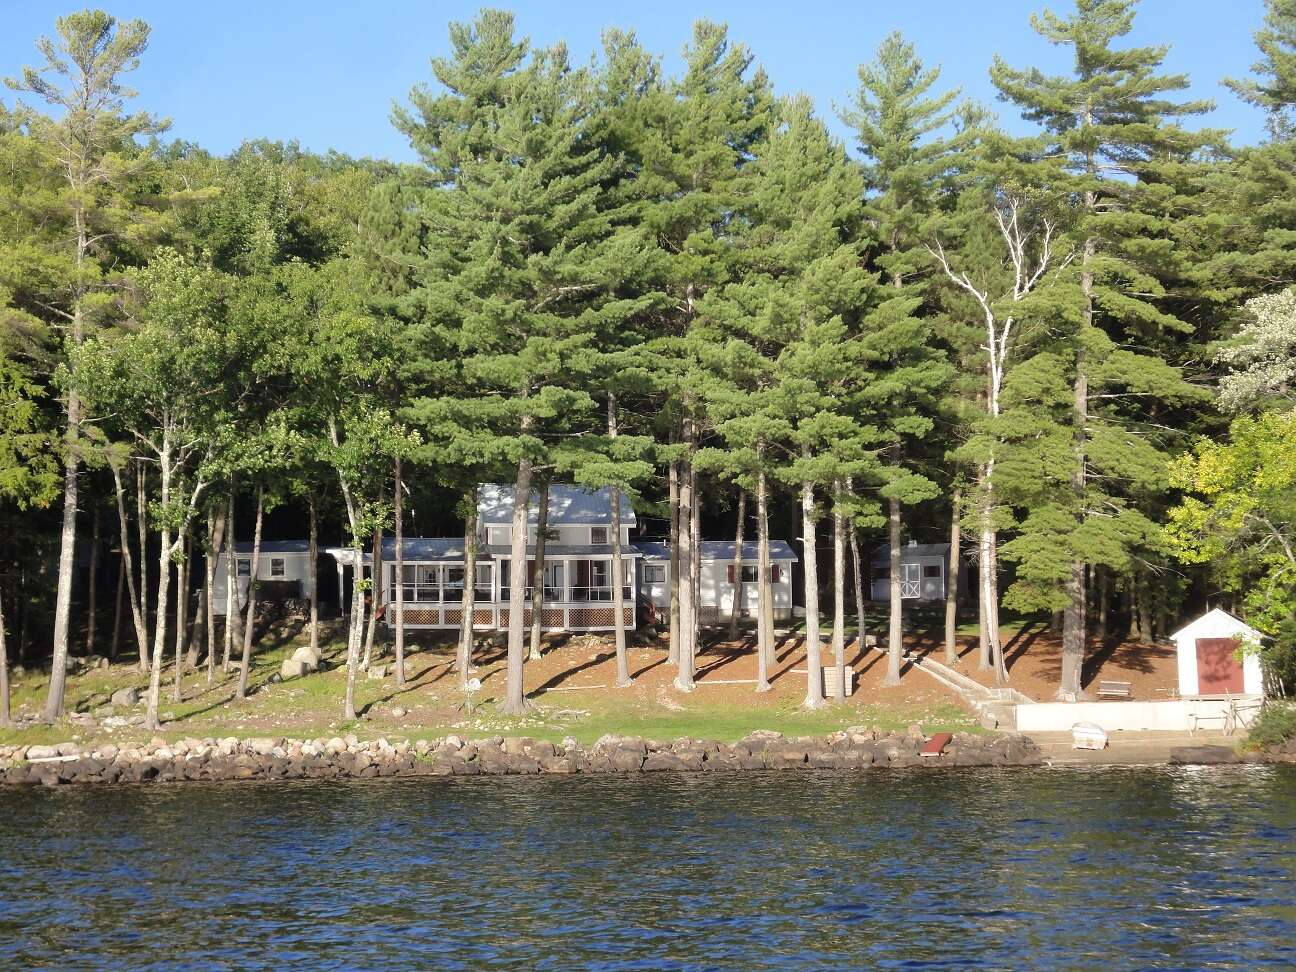 Vacation Property for Sale at 171 Adirondack Rd Schroon Lake, New York 12870 United States